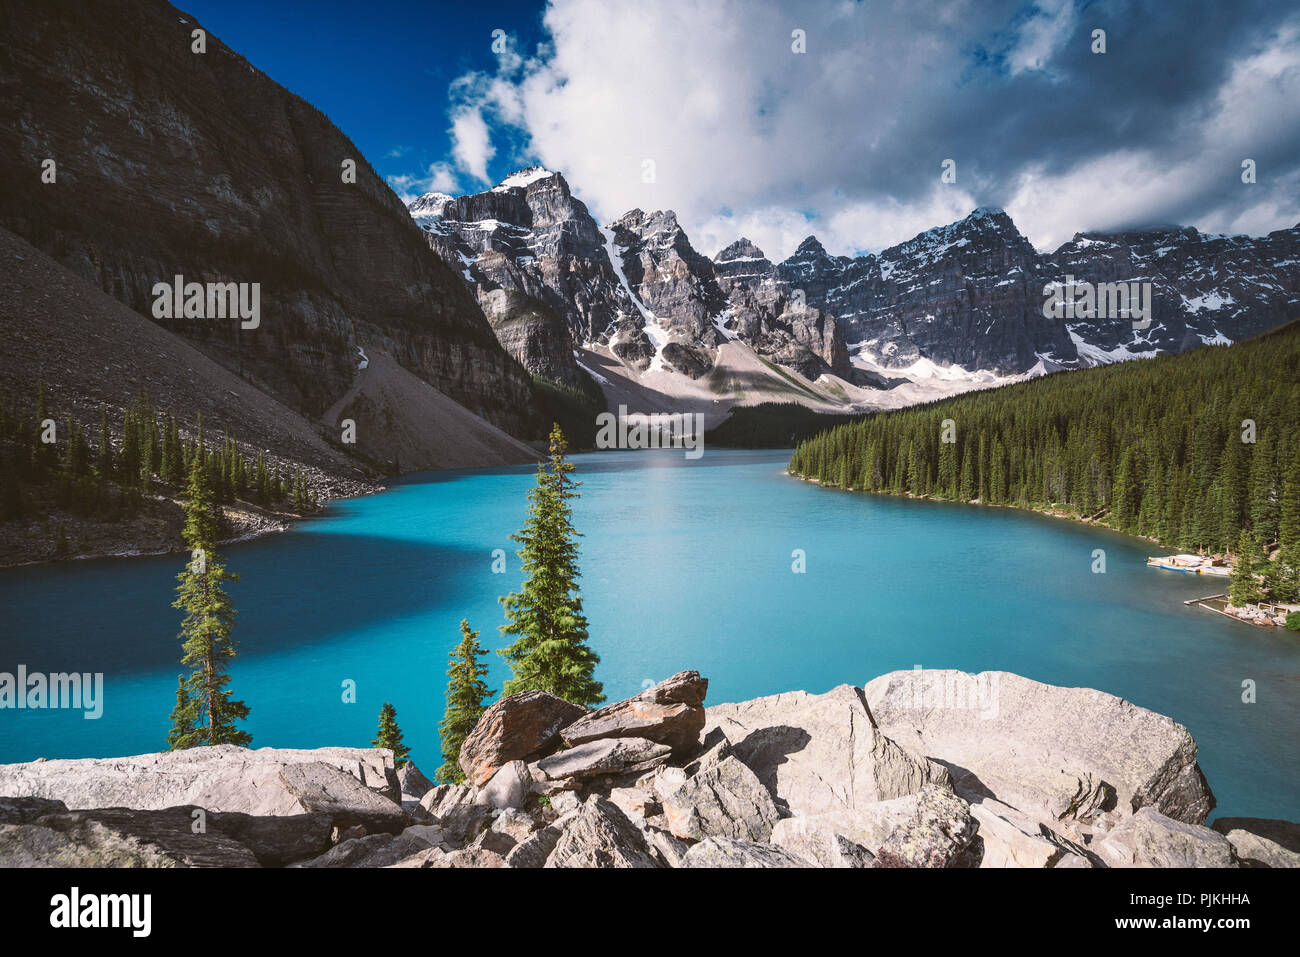 Moraine Lake, Banff National Park, Canada - Stock Image